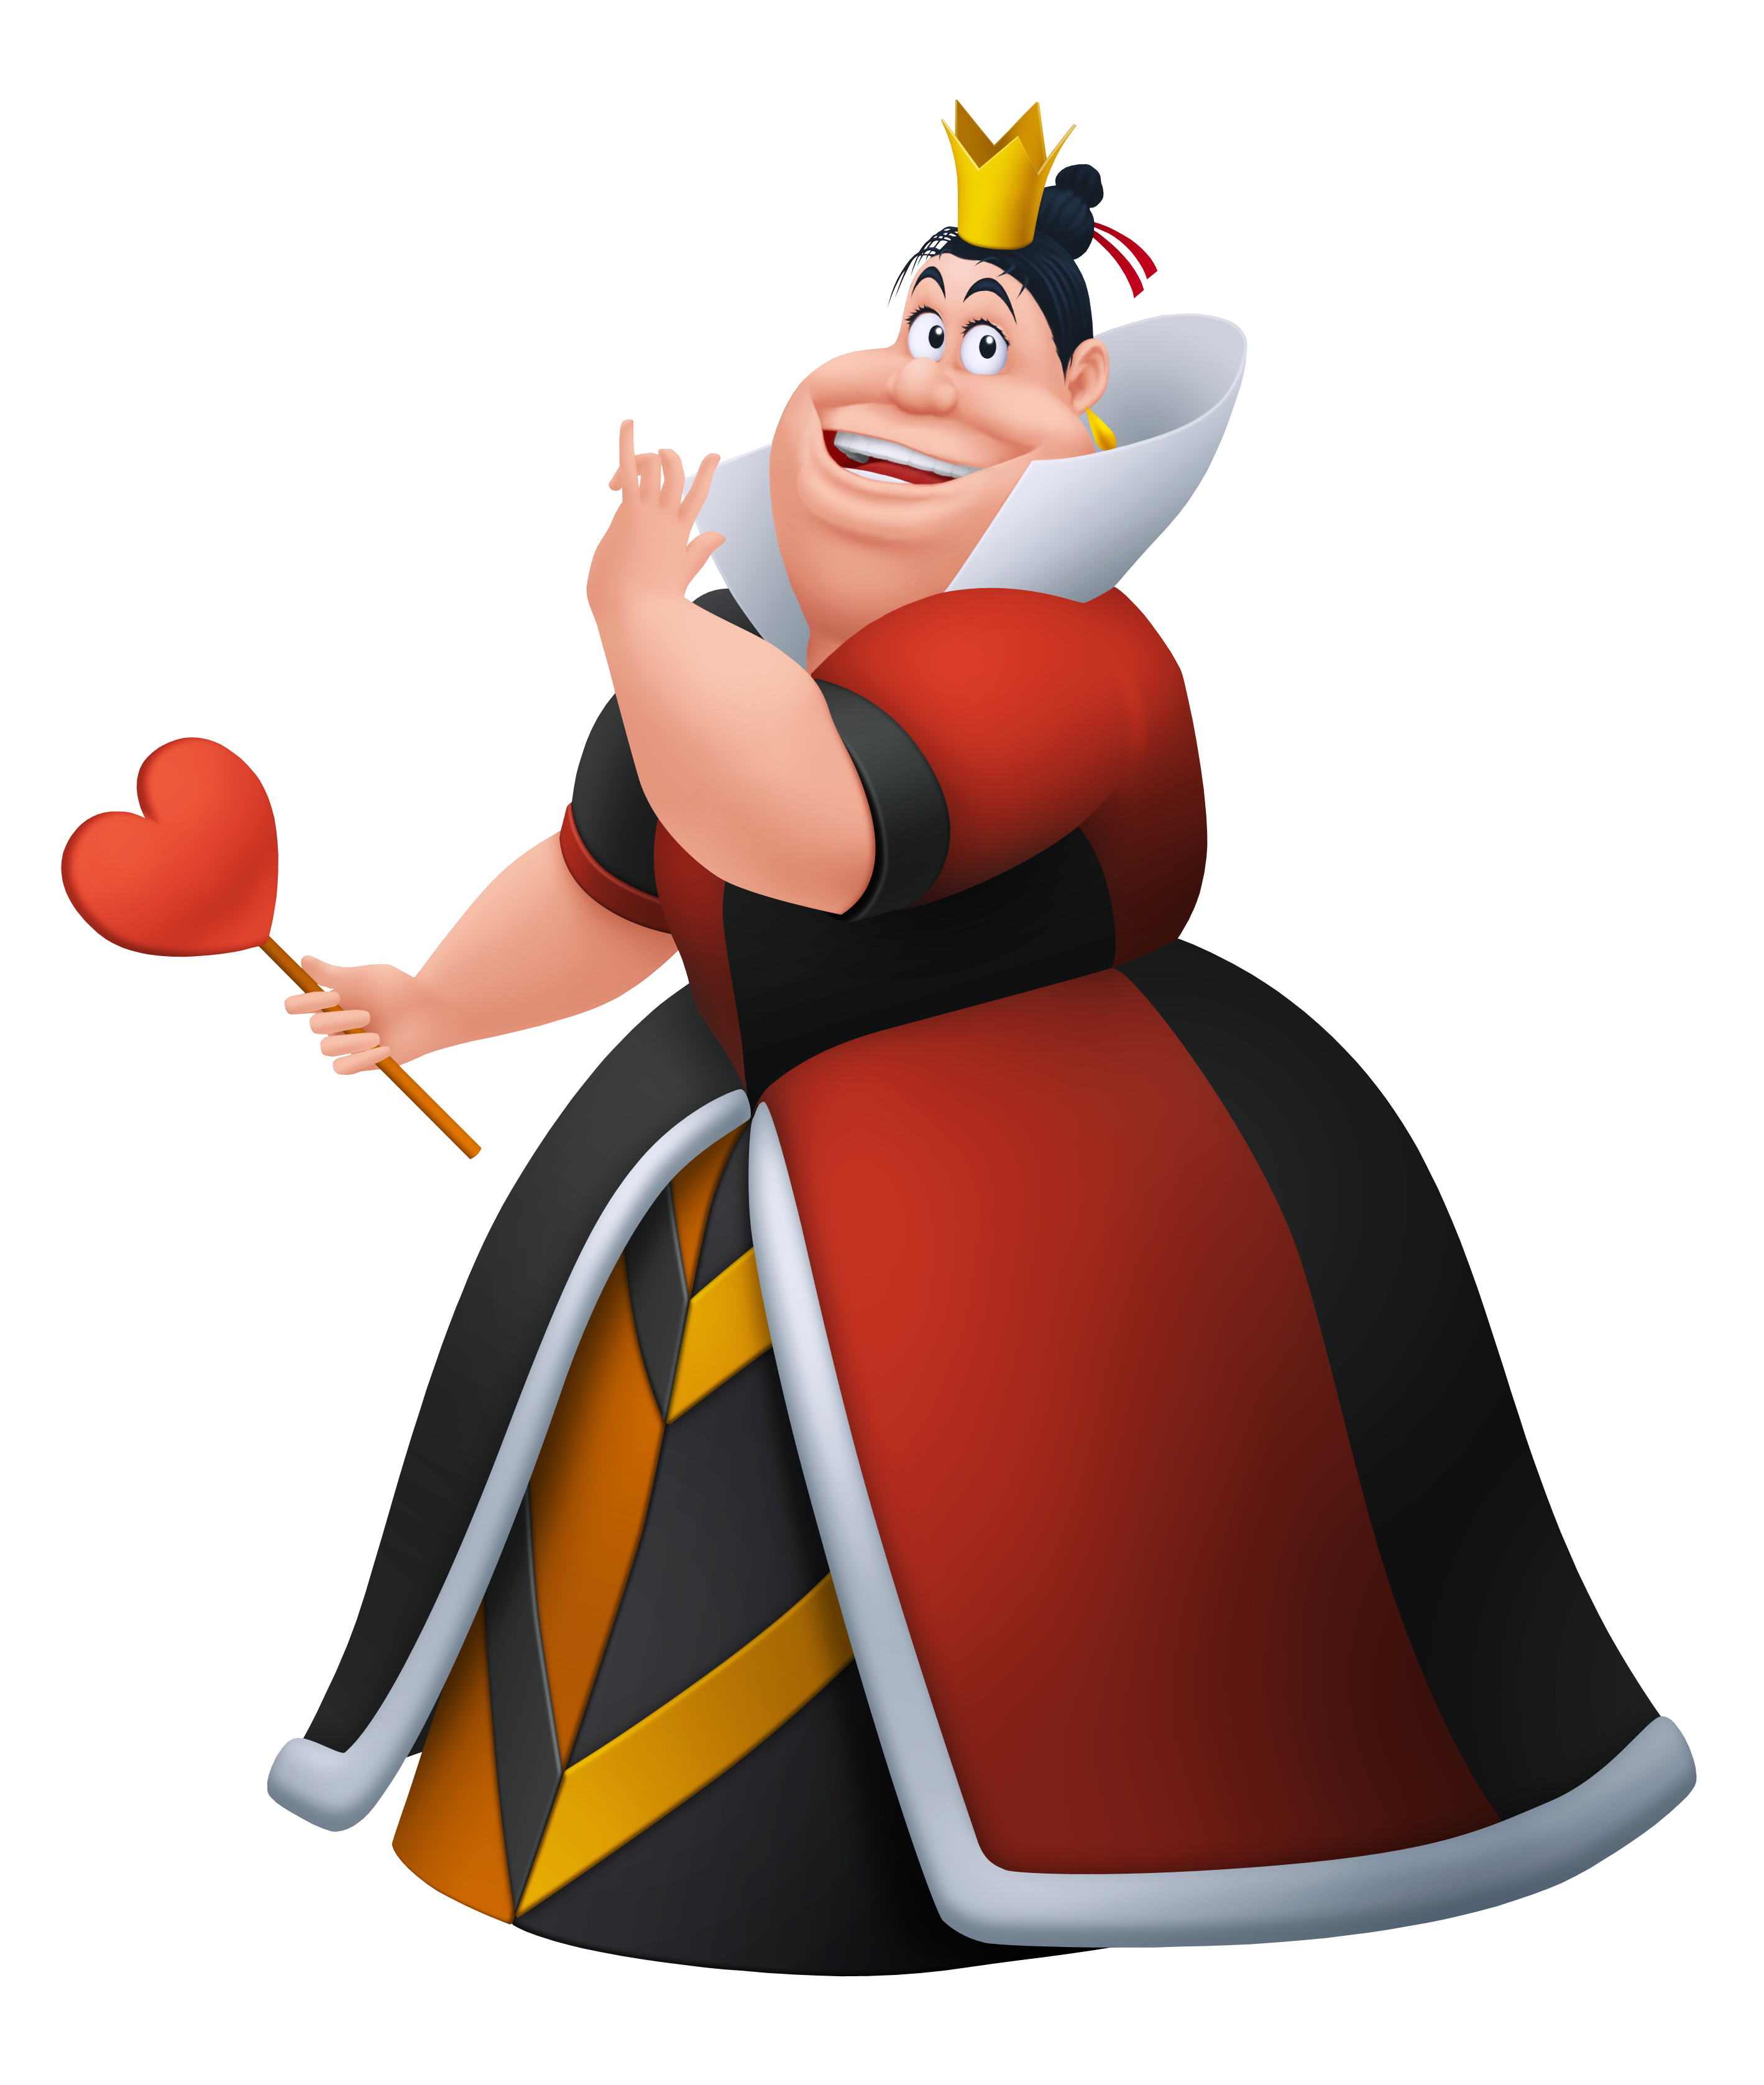 Queen of hearts arrow clipart - ClipartFest png library download